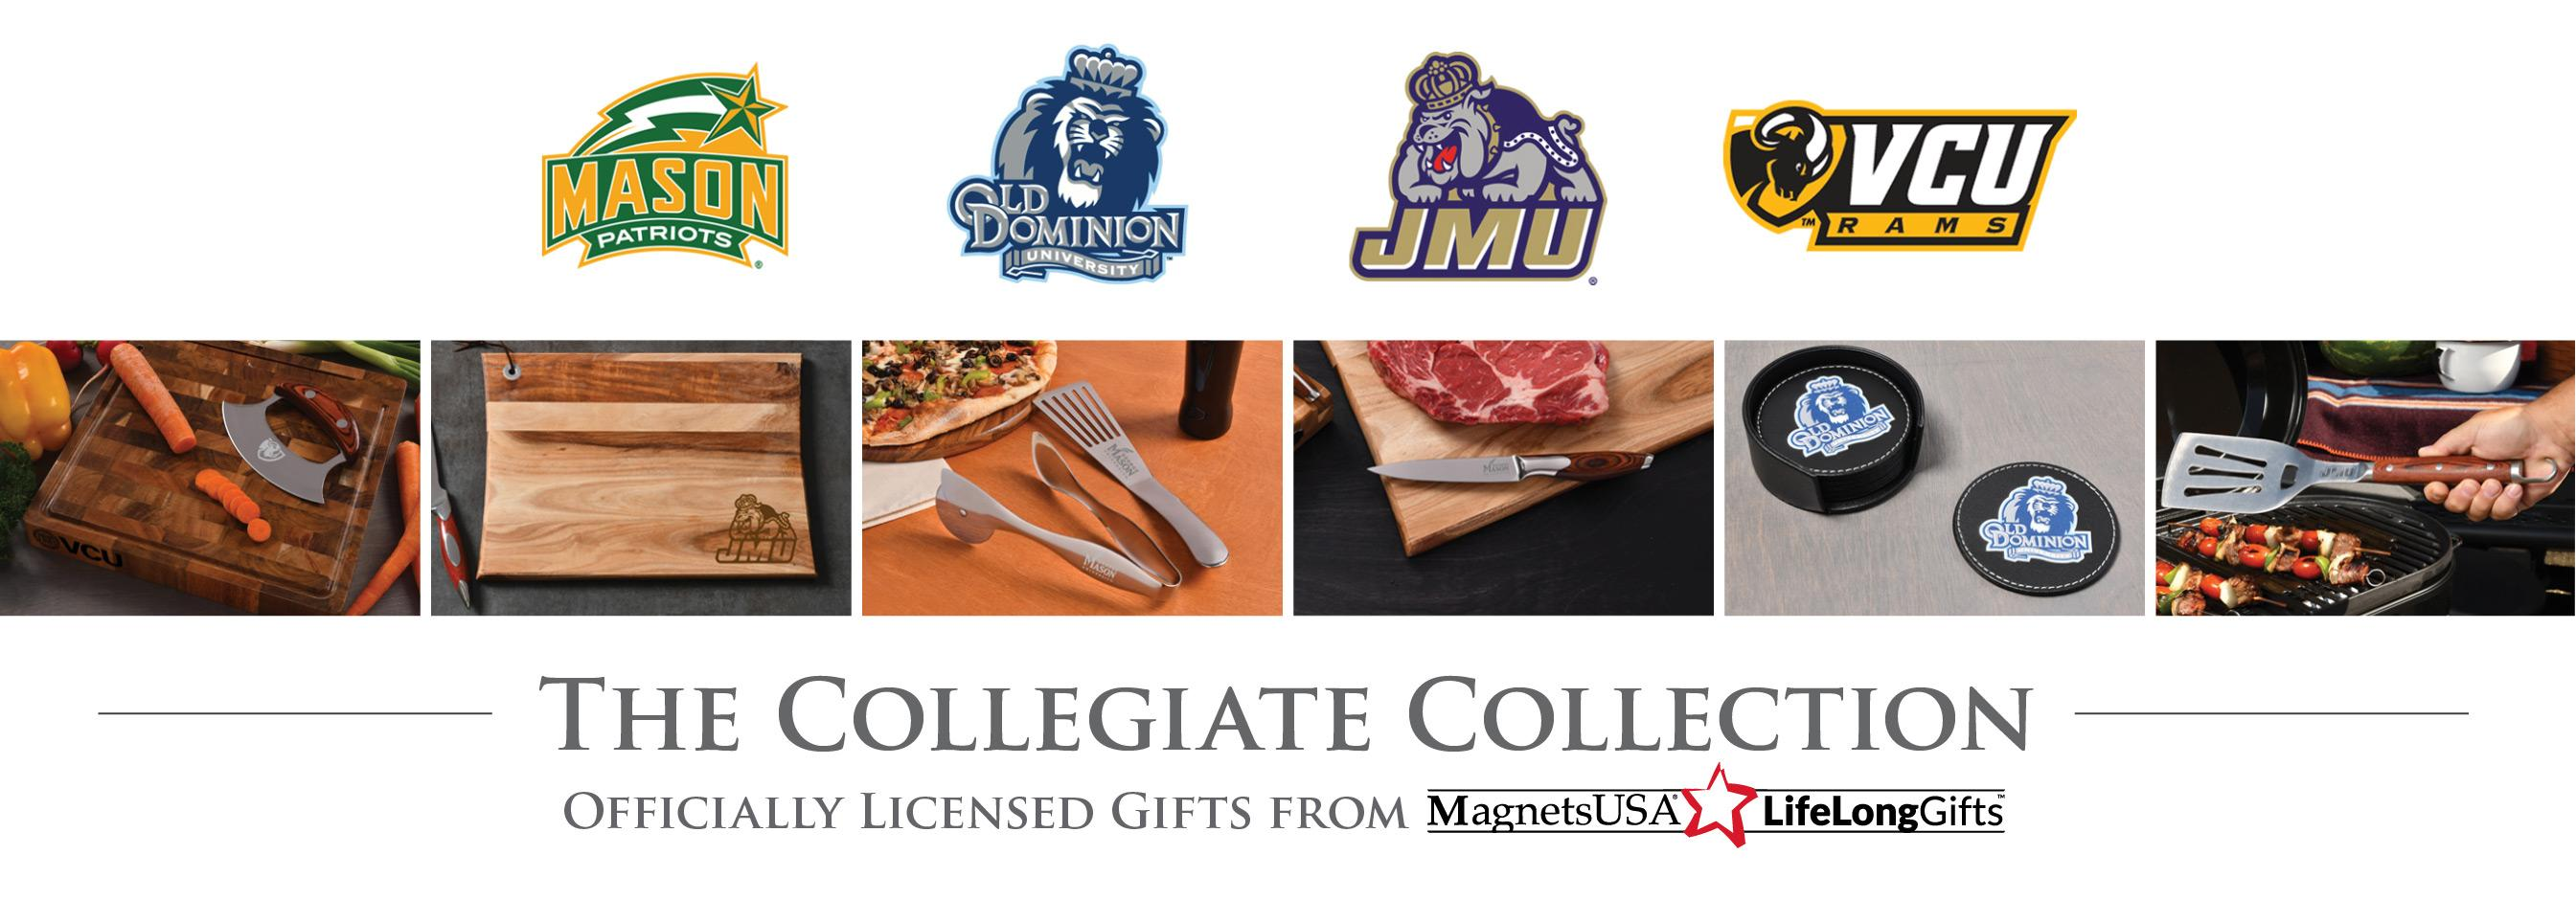 The Collegiate Collection